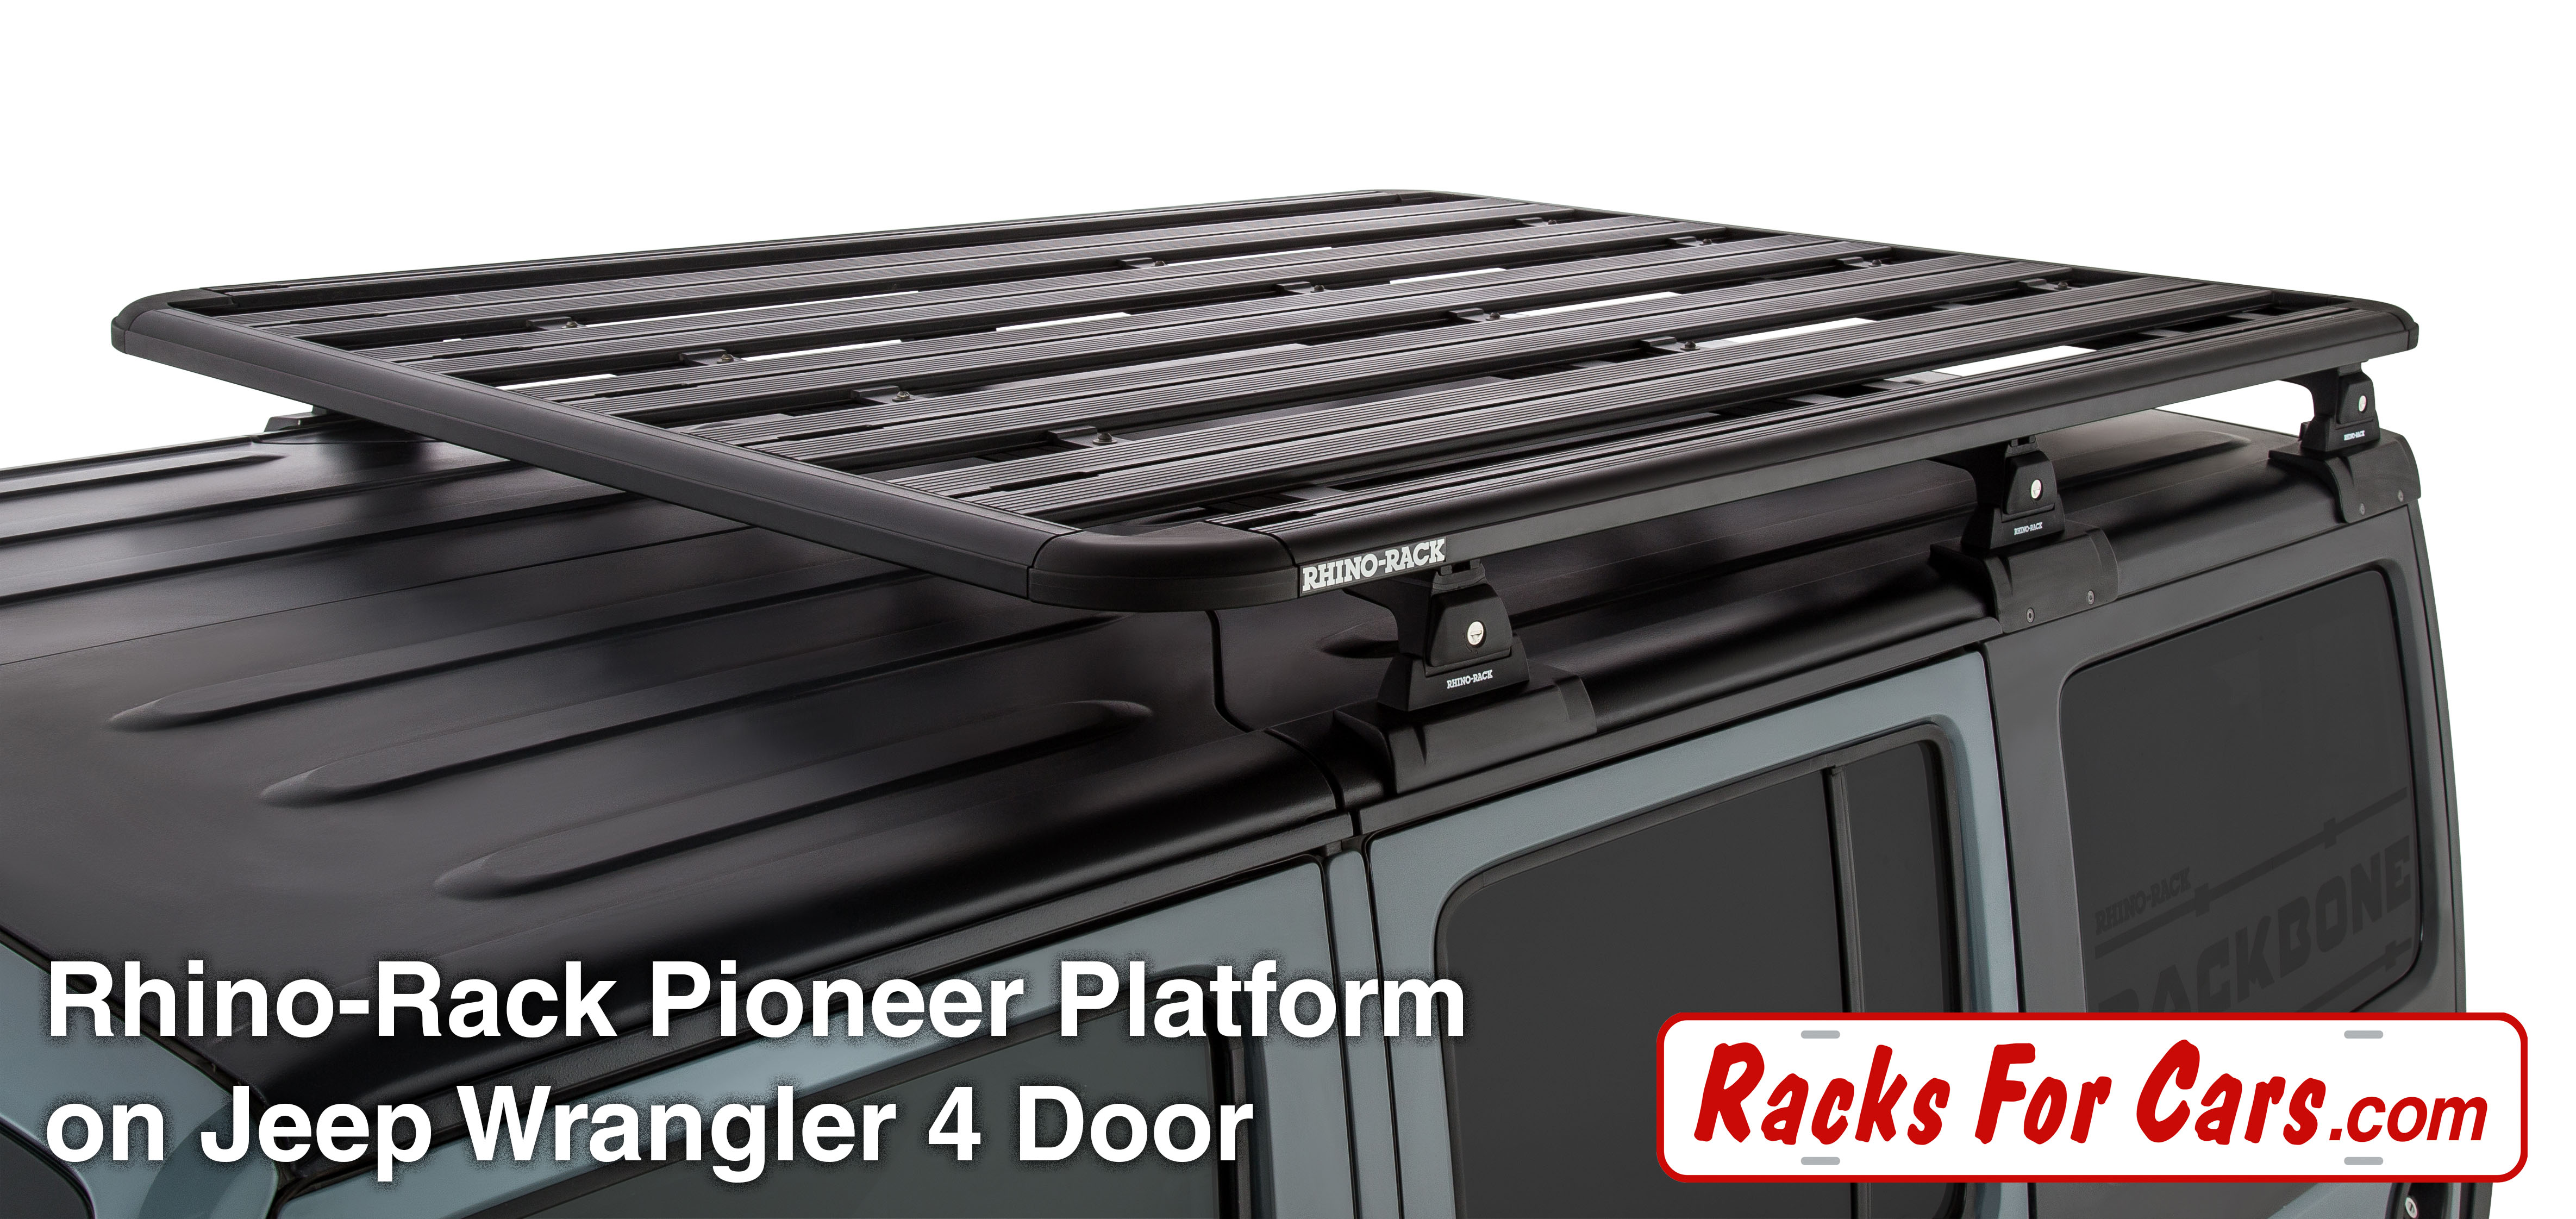 The Perfect Roof Top Tent Platform For Your Jeep Wrangler